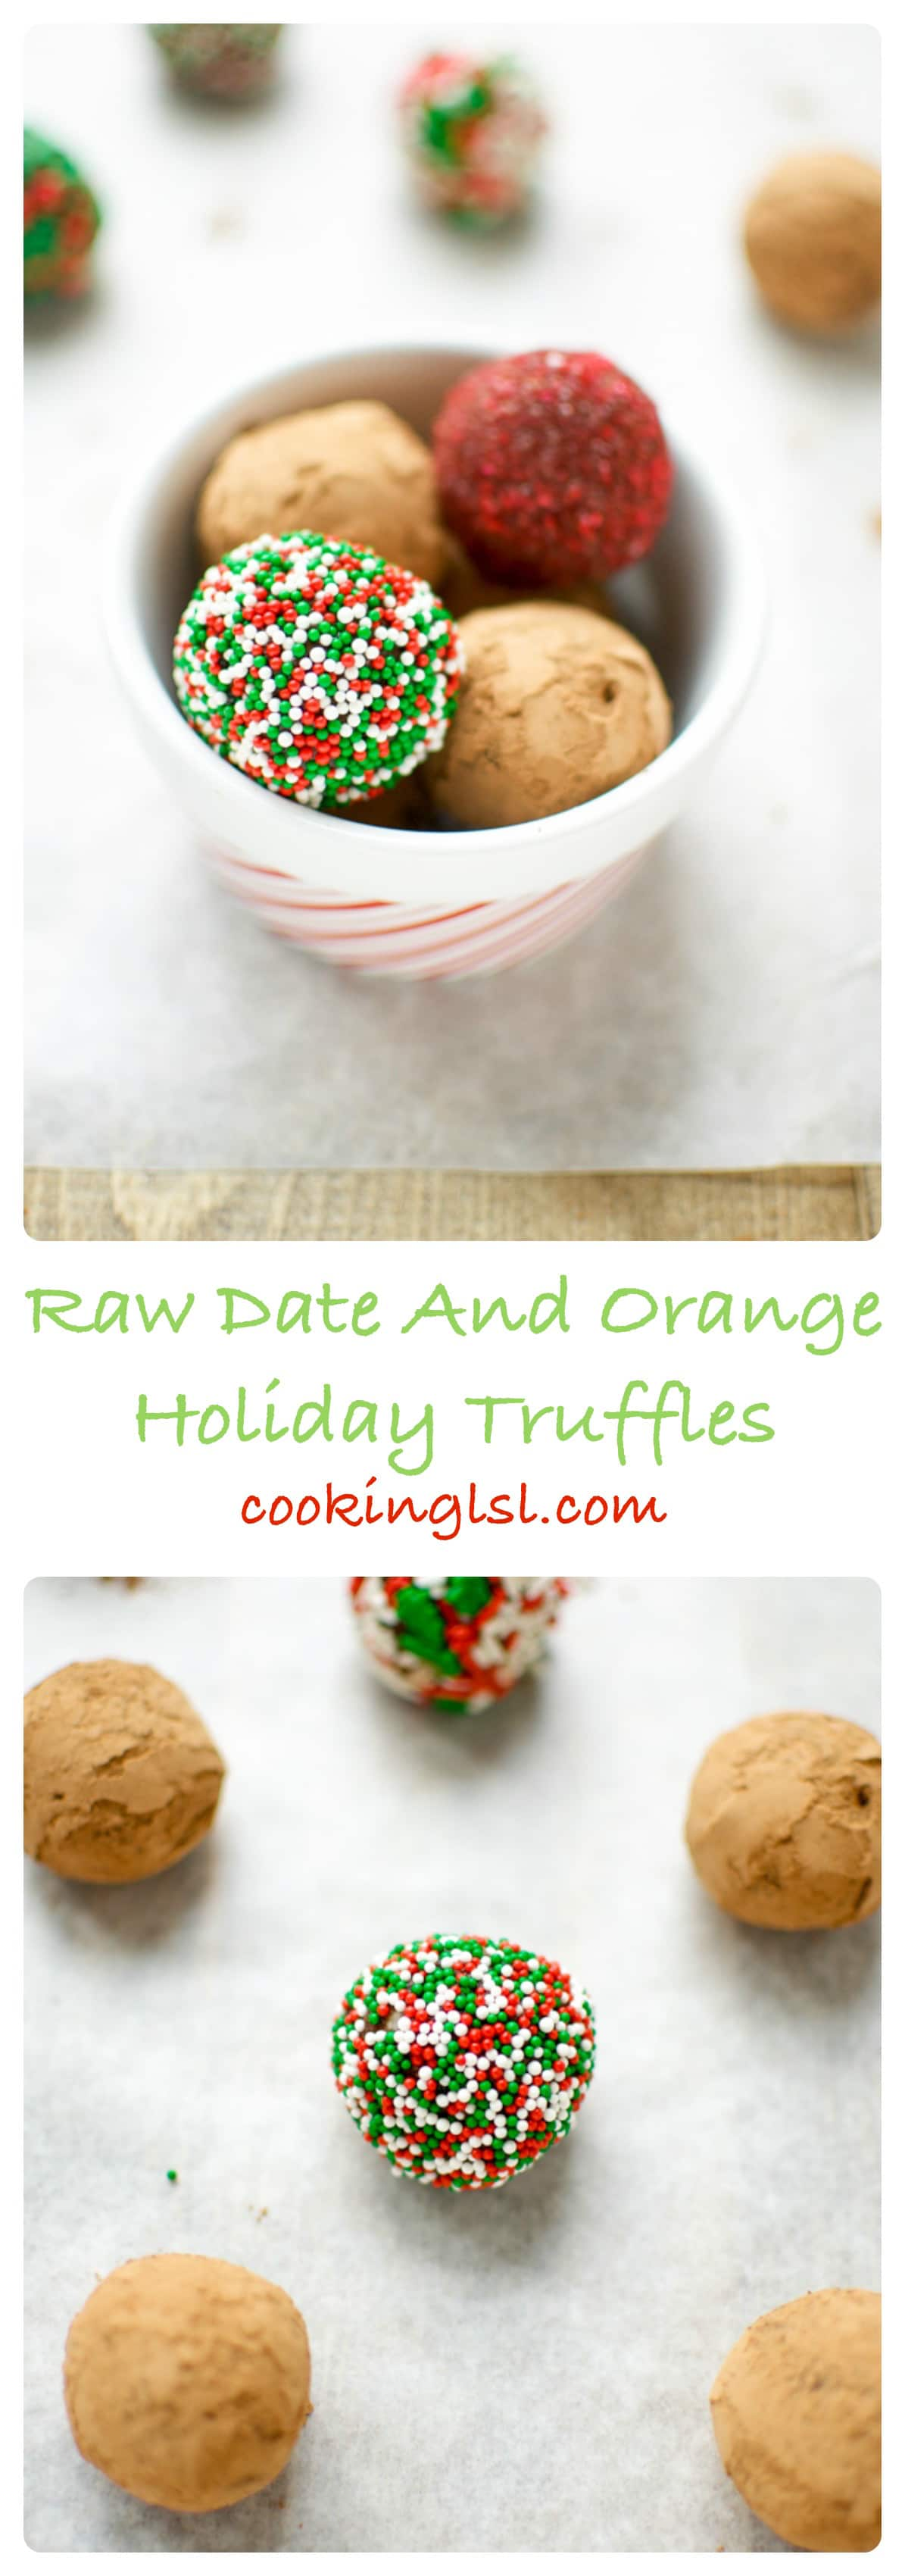 Raw Date And Orange Holiday Truffles - the perfect sweet treat to give as a holiday present. Easy to make, they are naturally sweetened with dates, loaded with fiber from the hazelnuts, sweet-tart flavor from the cranberries, fresh and light citrusy orange taste and rich chocolate flavor from the cacao powder. These truffles are healthy, low fat and sinfully delicious!